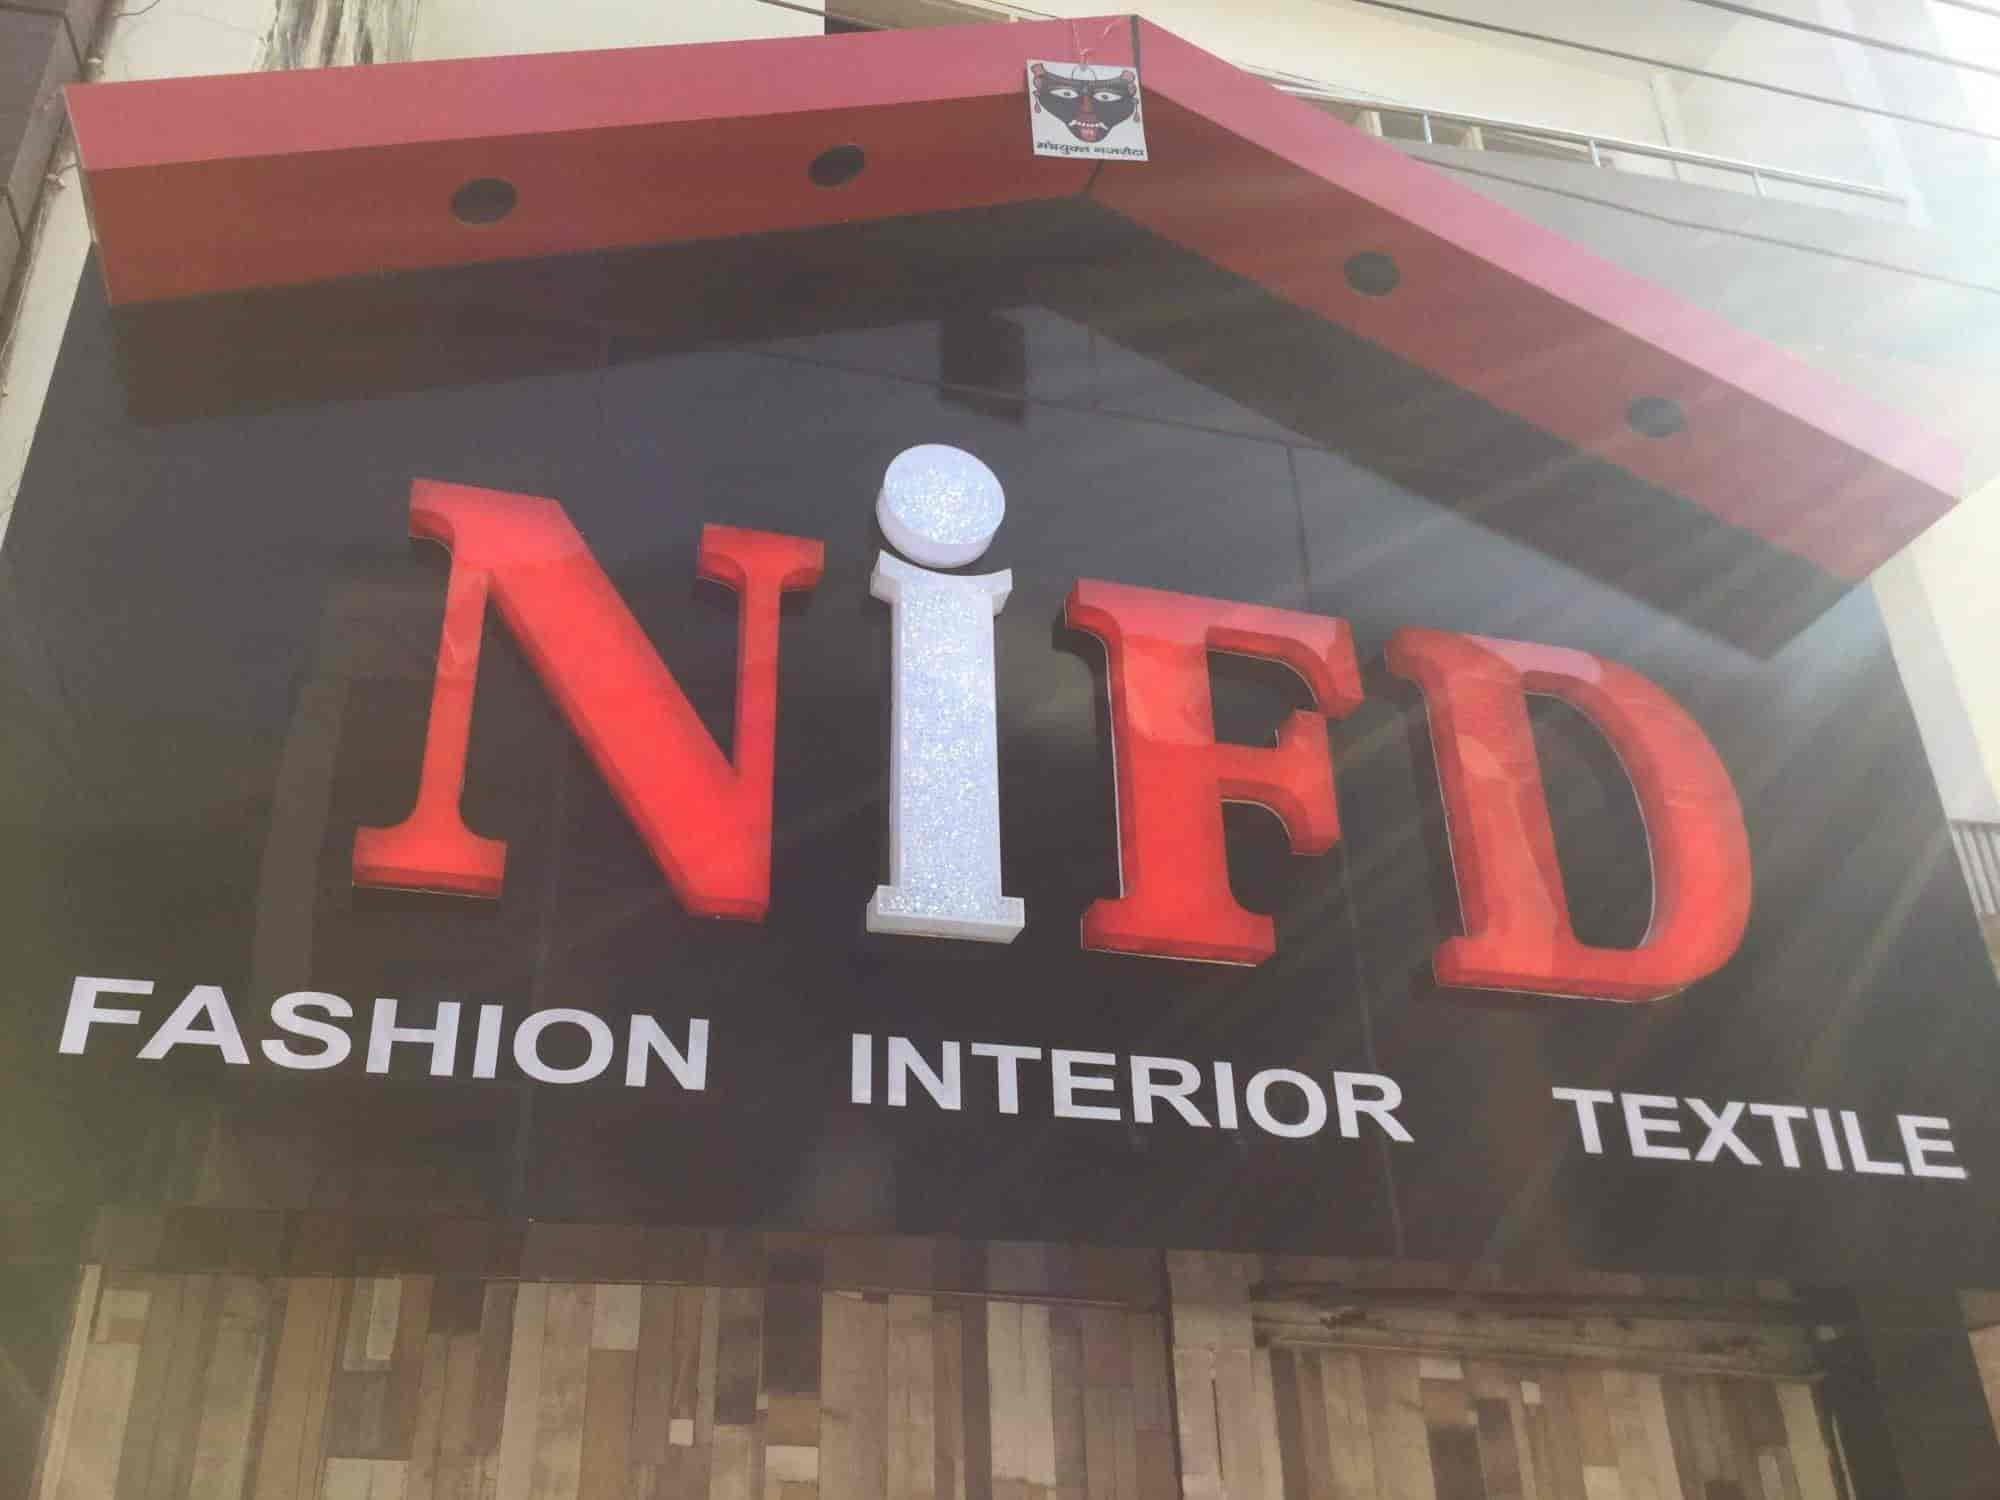 Nifd National Institute Of Fashion Design Education Ramghat Road Computer Training Institutes In Aligarh Justdial